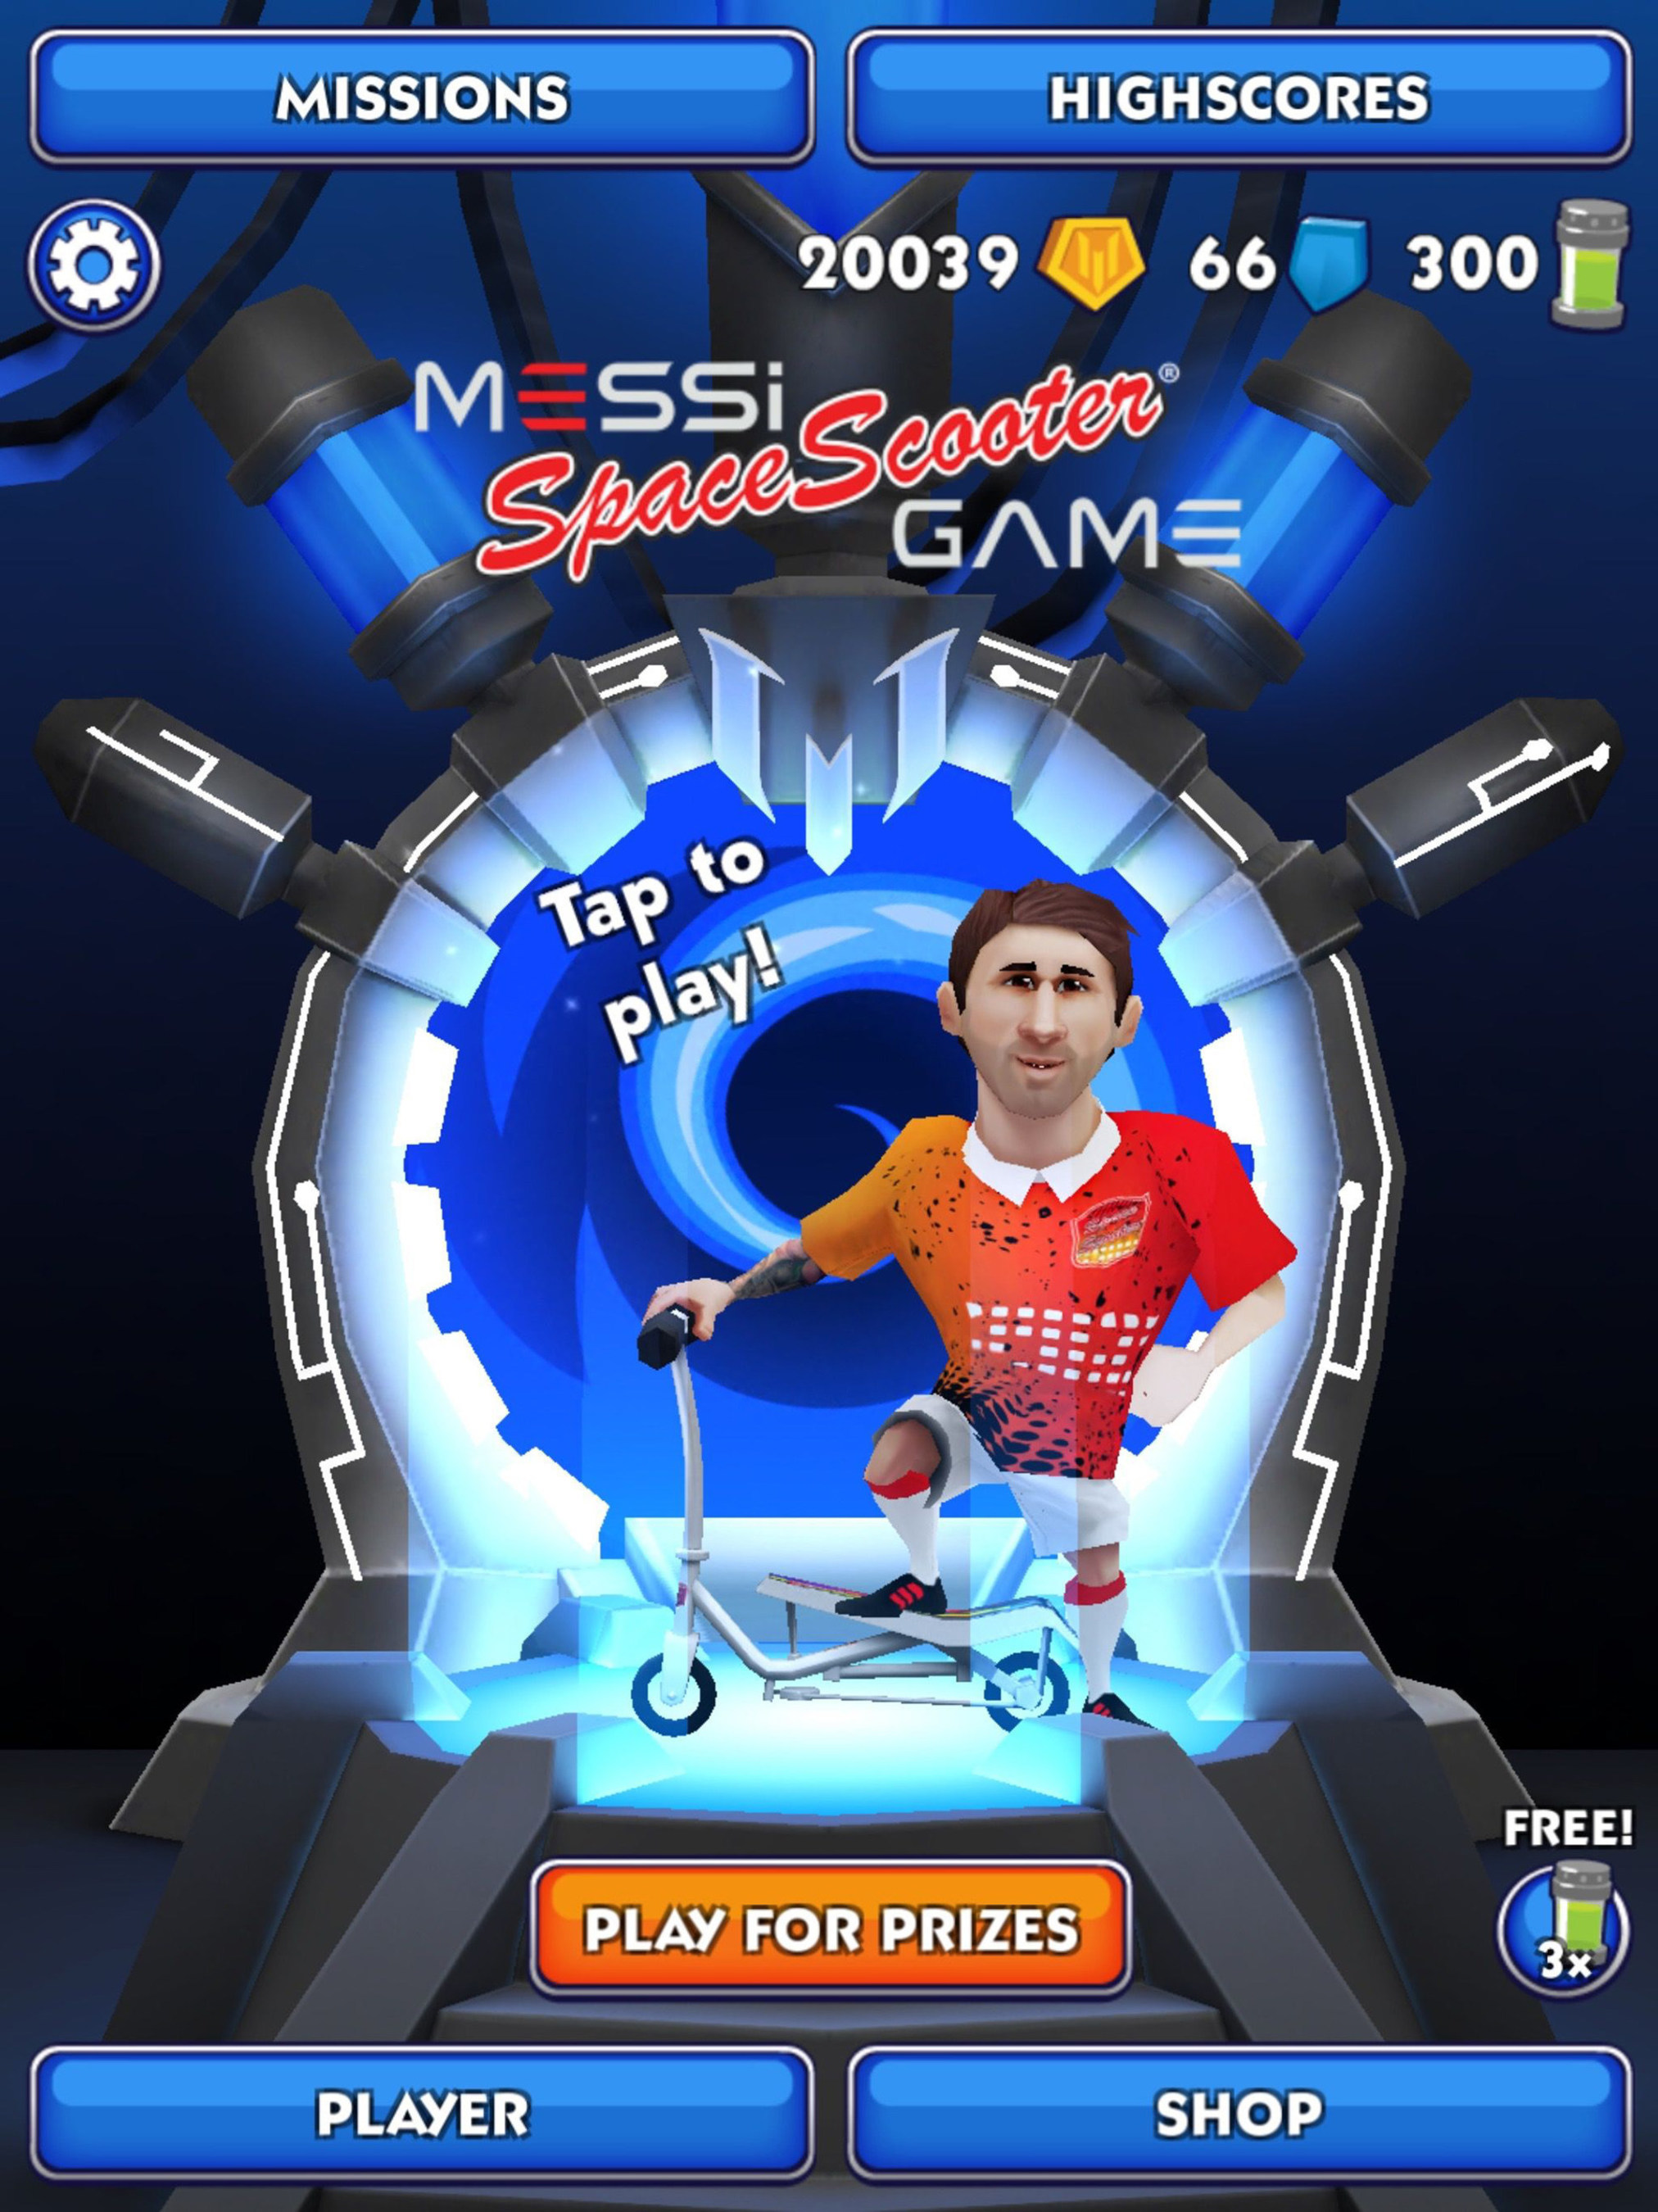 Messi Has His Own Space Scooter Game